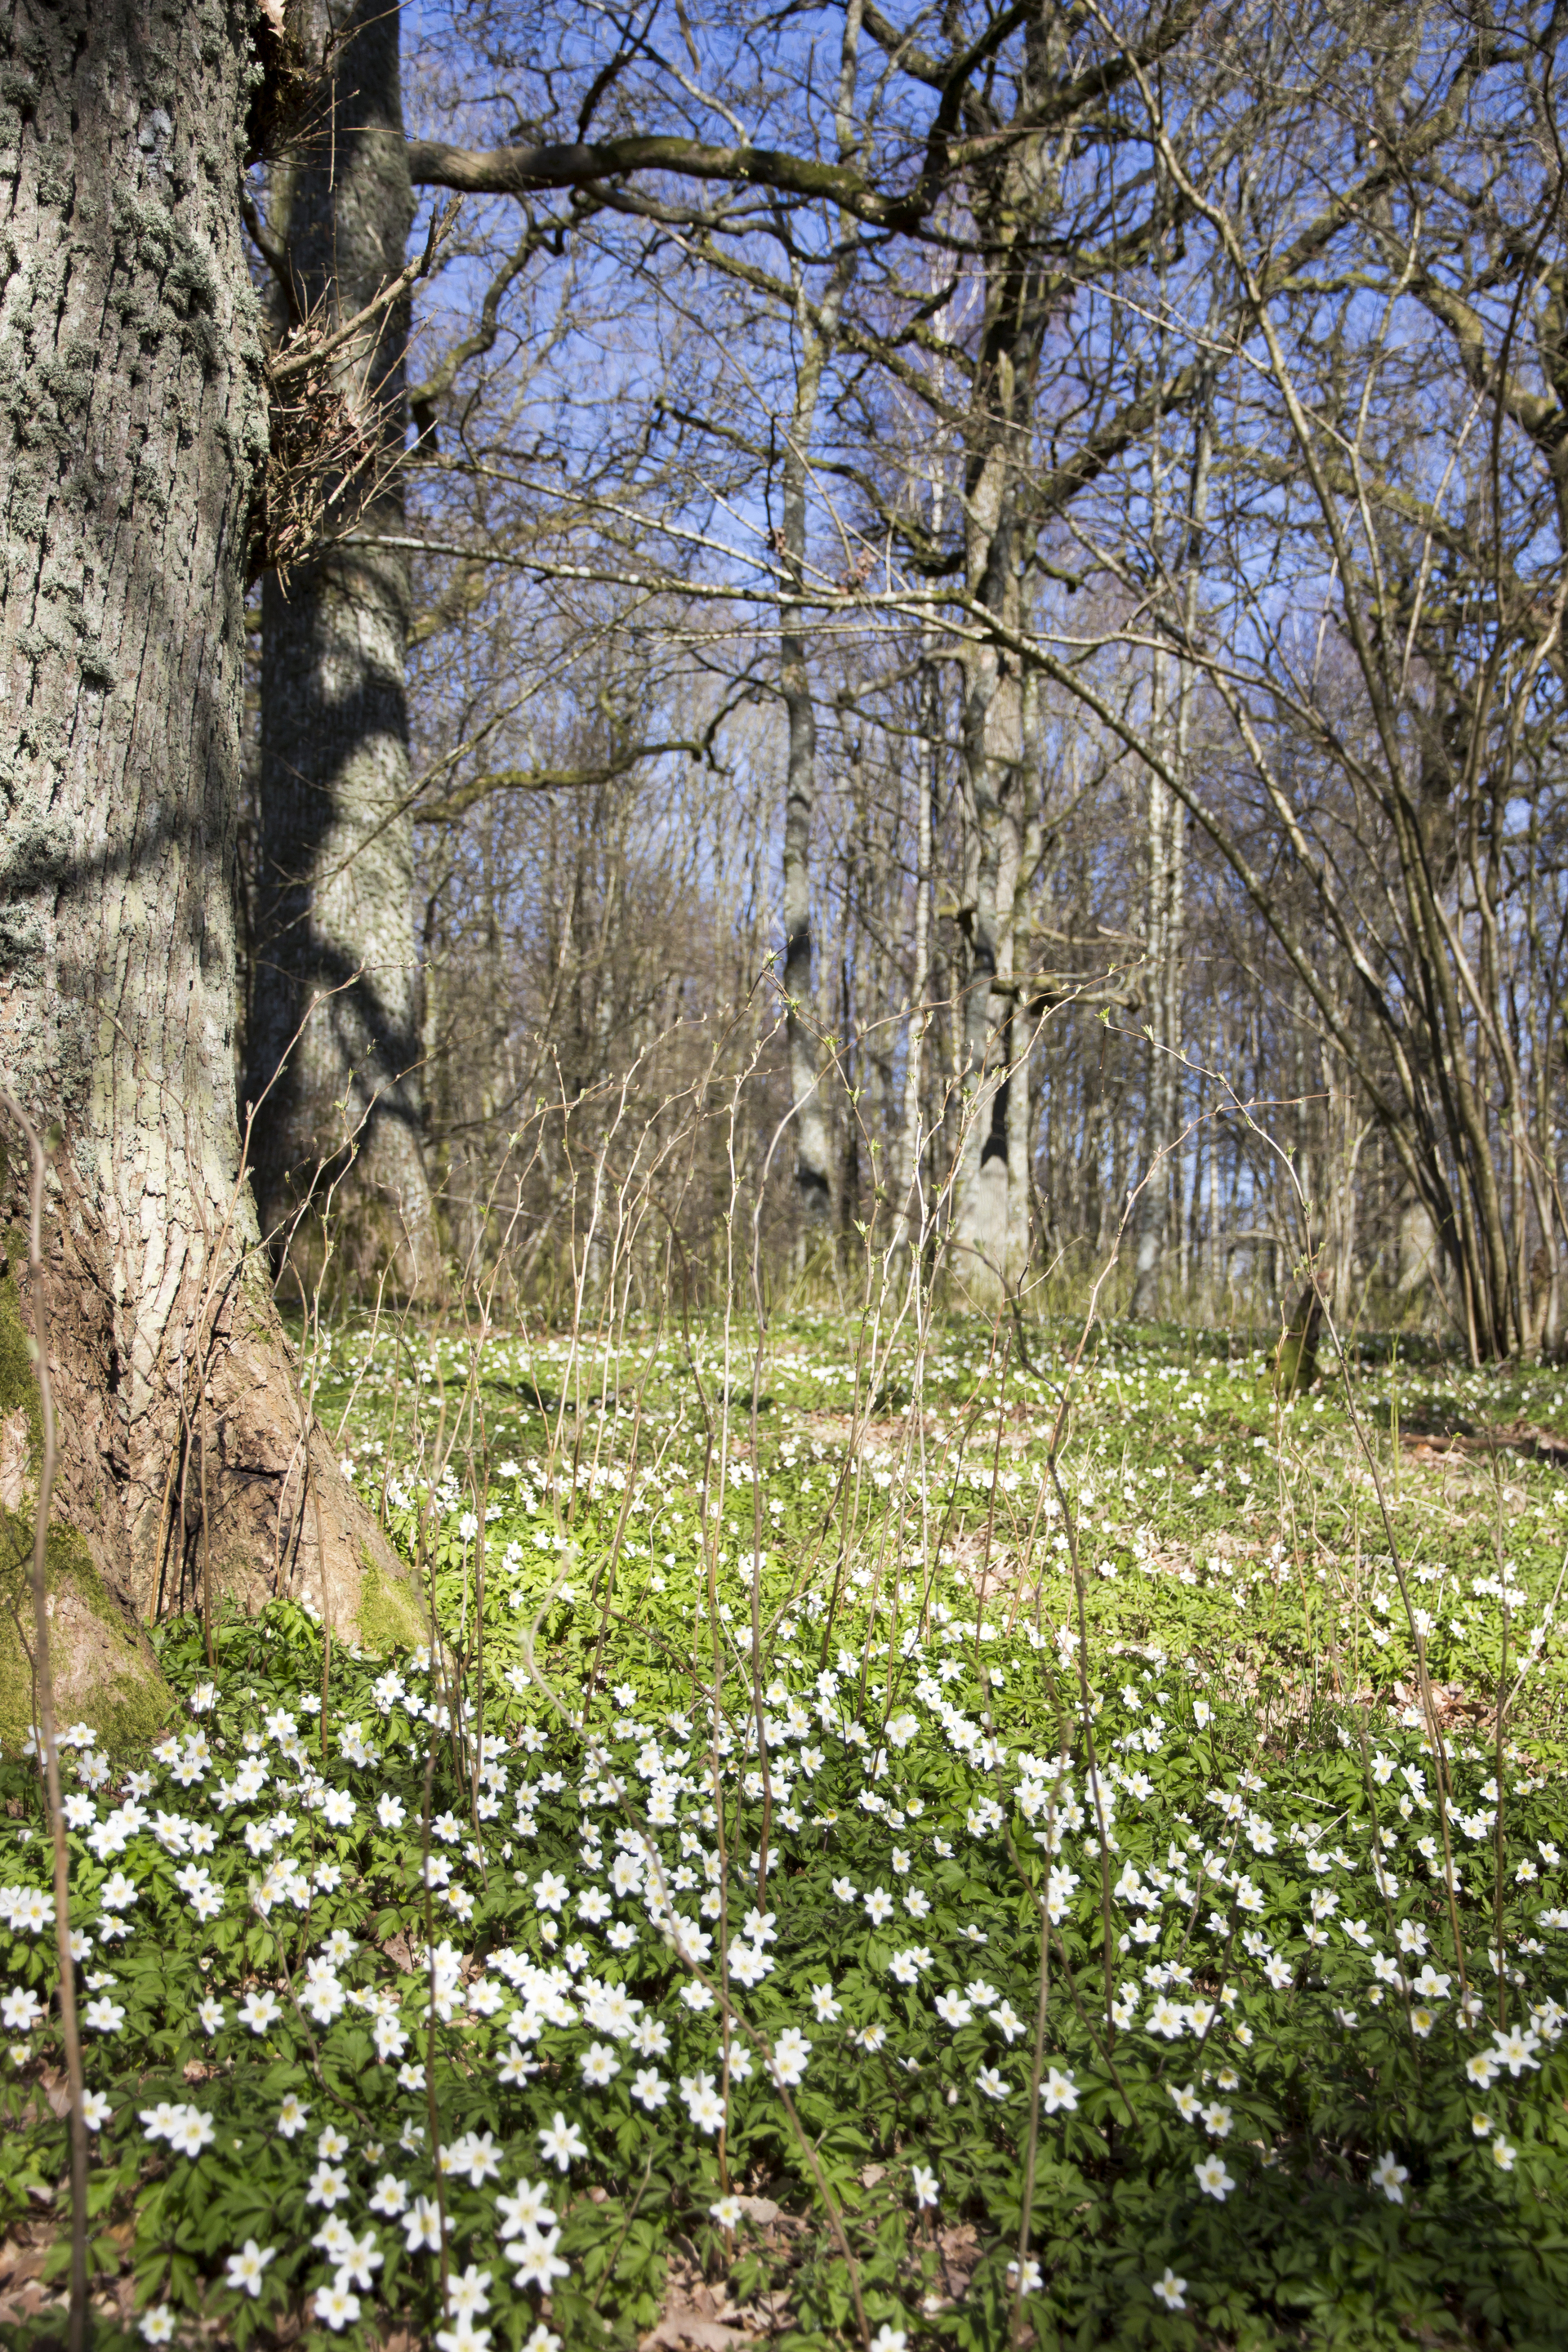 Wildflowers growing in forest | spring, nature, summer, flower